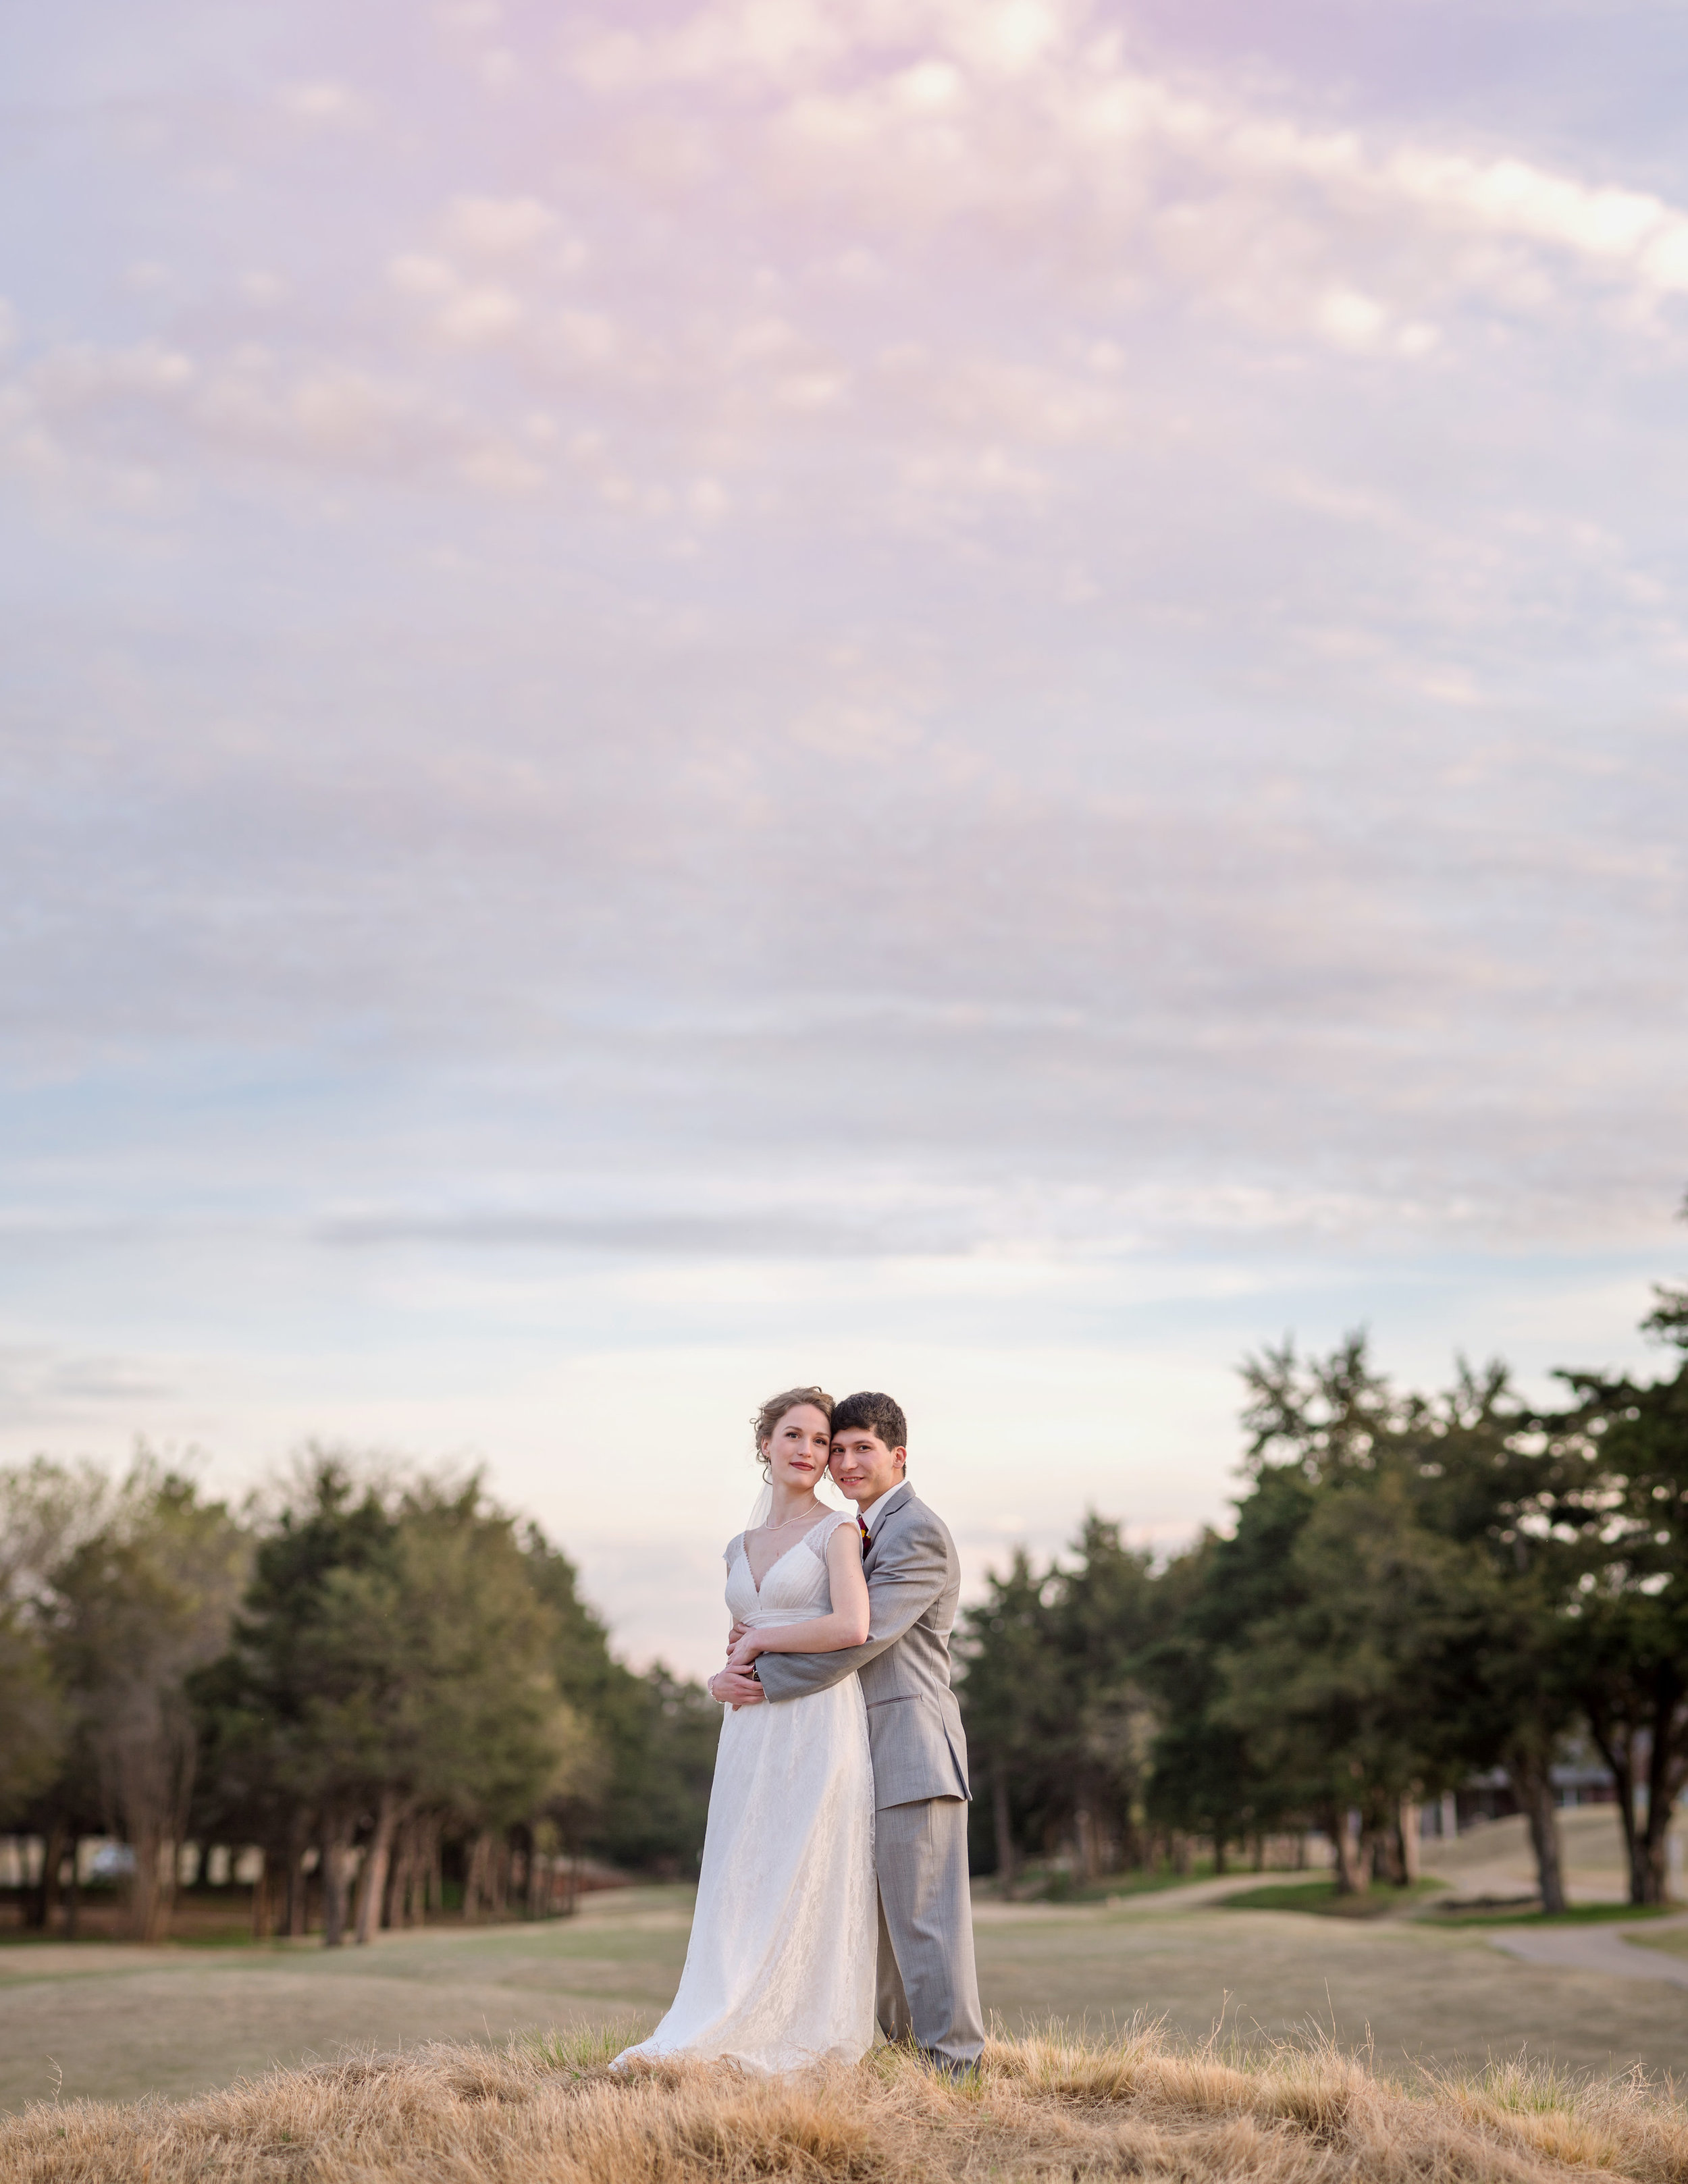 Martinez_Wedding2018_FirstLook_B+G_JM(52of102)-Pano.jpg